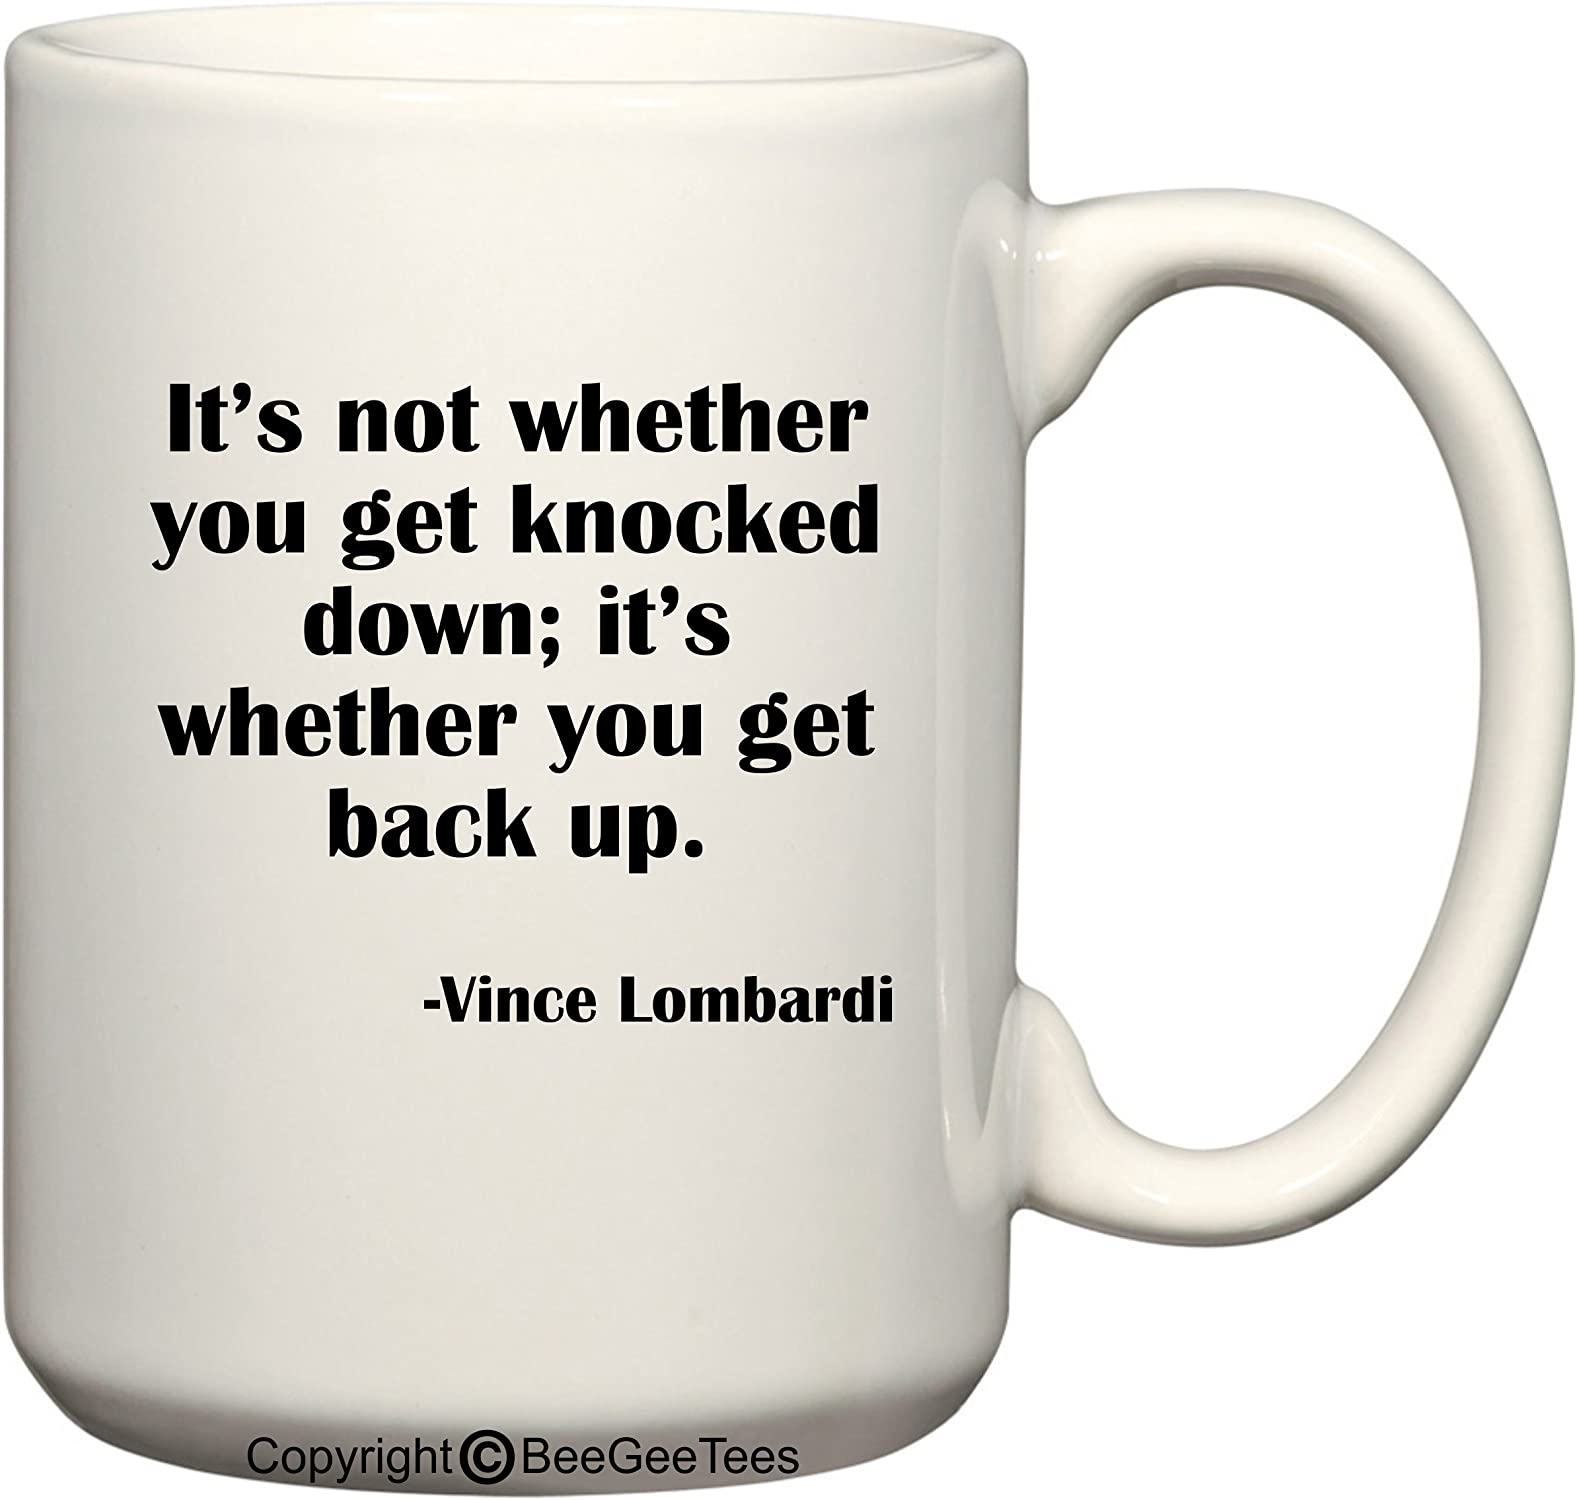 It's not whether you get knocked down; it's whether you get back up. - Vince Lombardi Coffee or Tea Cup 15 oz Gift Mug by BeeGeeTees